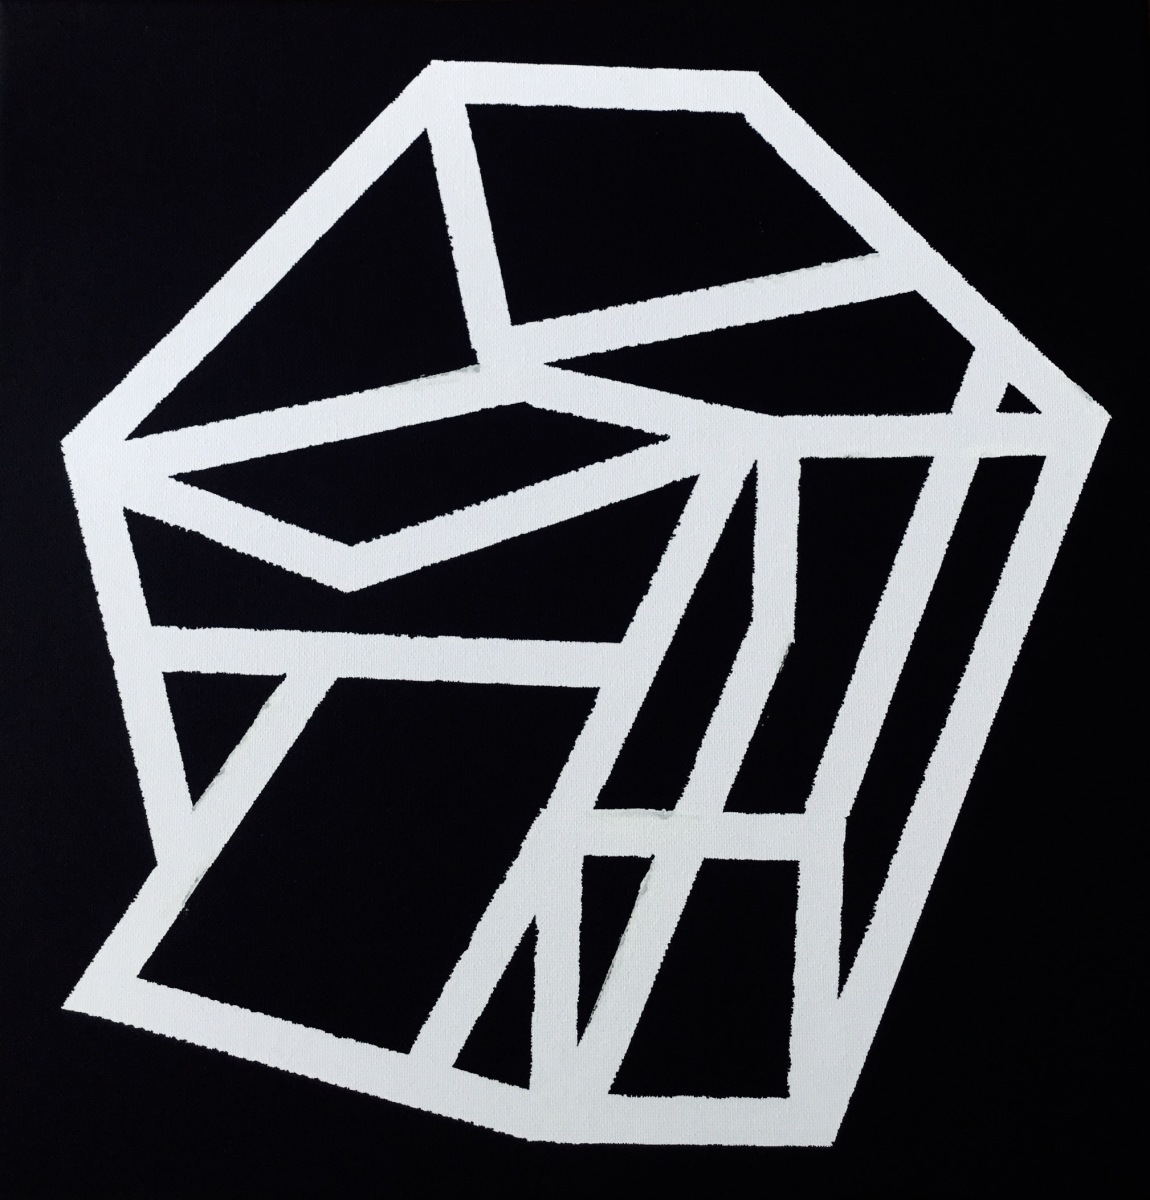 Diy Design Objects: DIY PAINTING OF GEOMETRIC OBJECTS